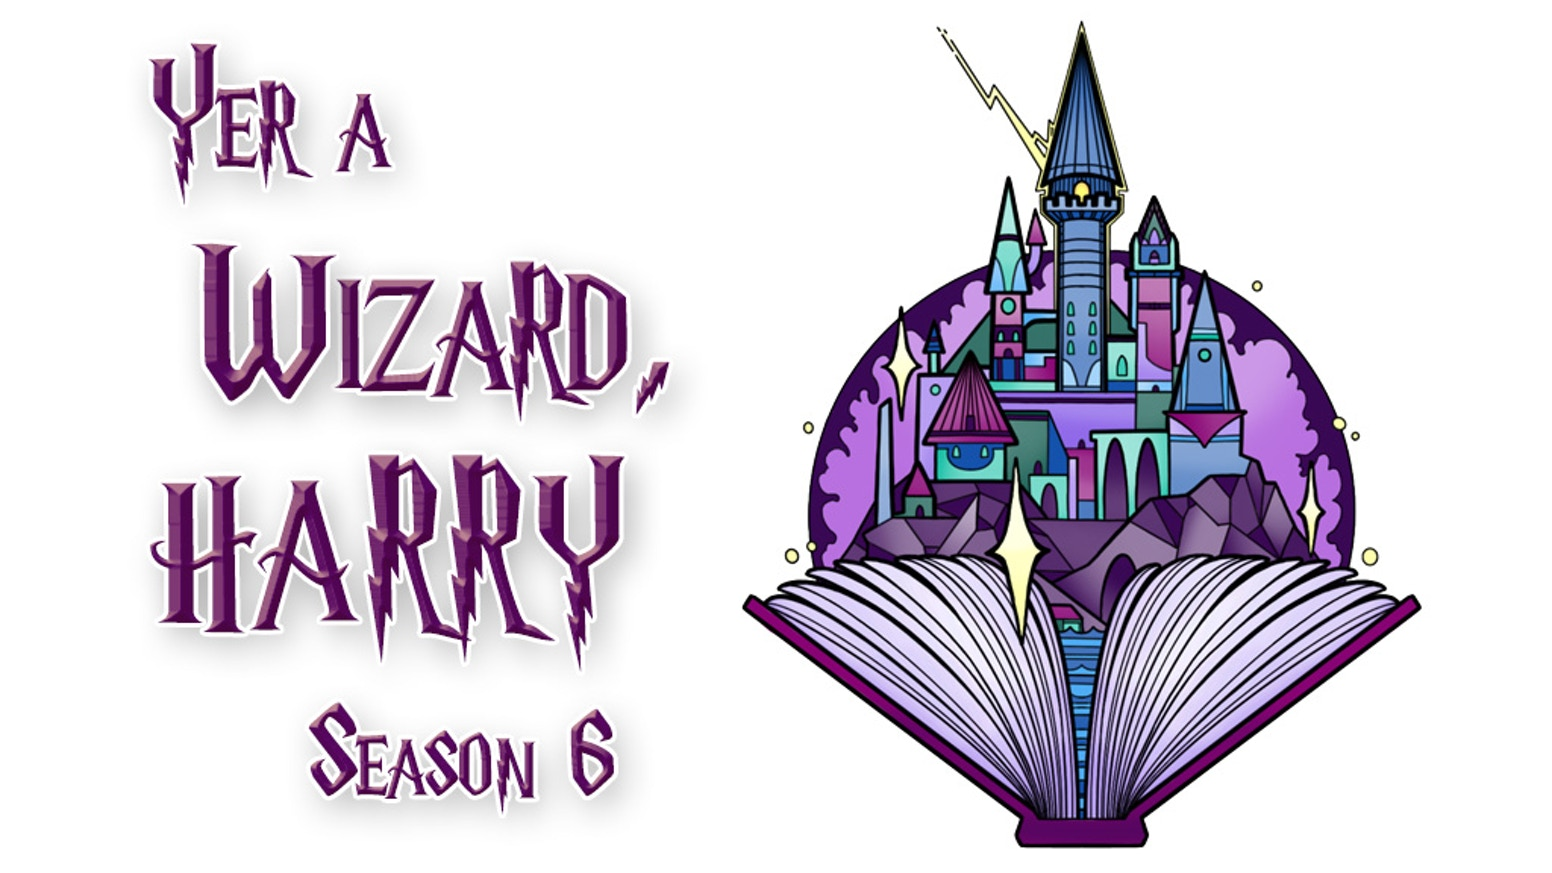 Yer a Wizard Harry Podcast, Season 6 by Michael DiMauro